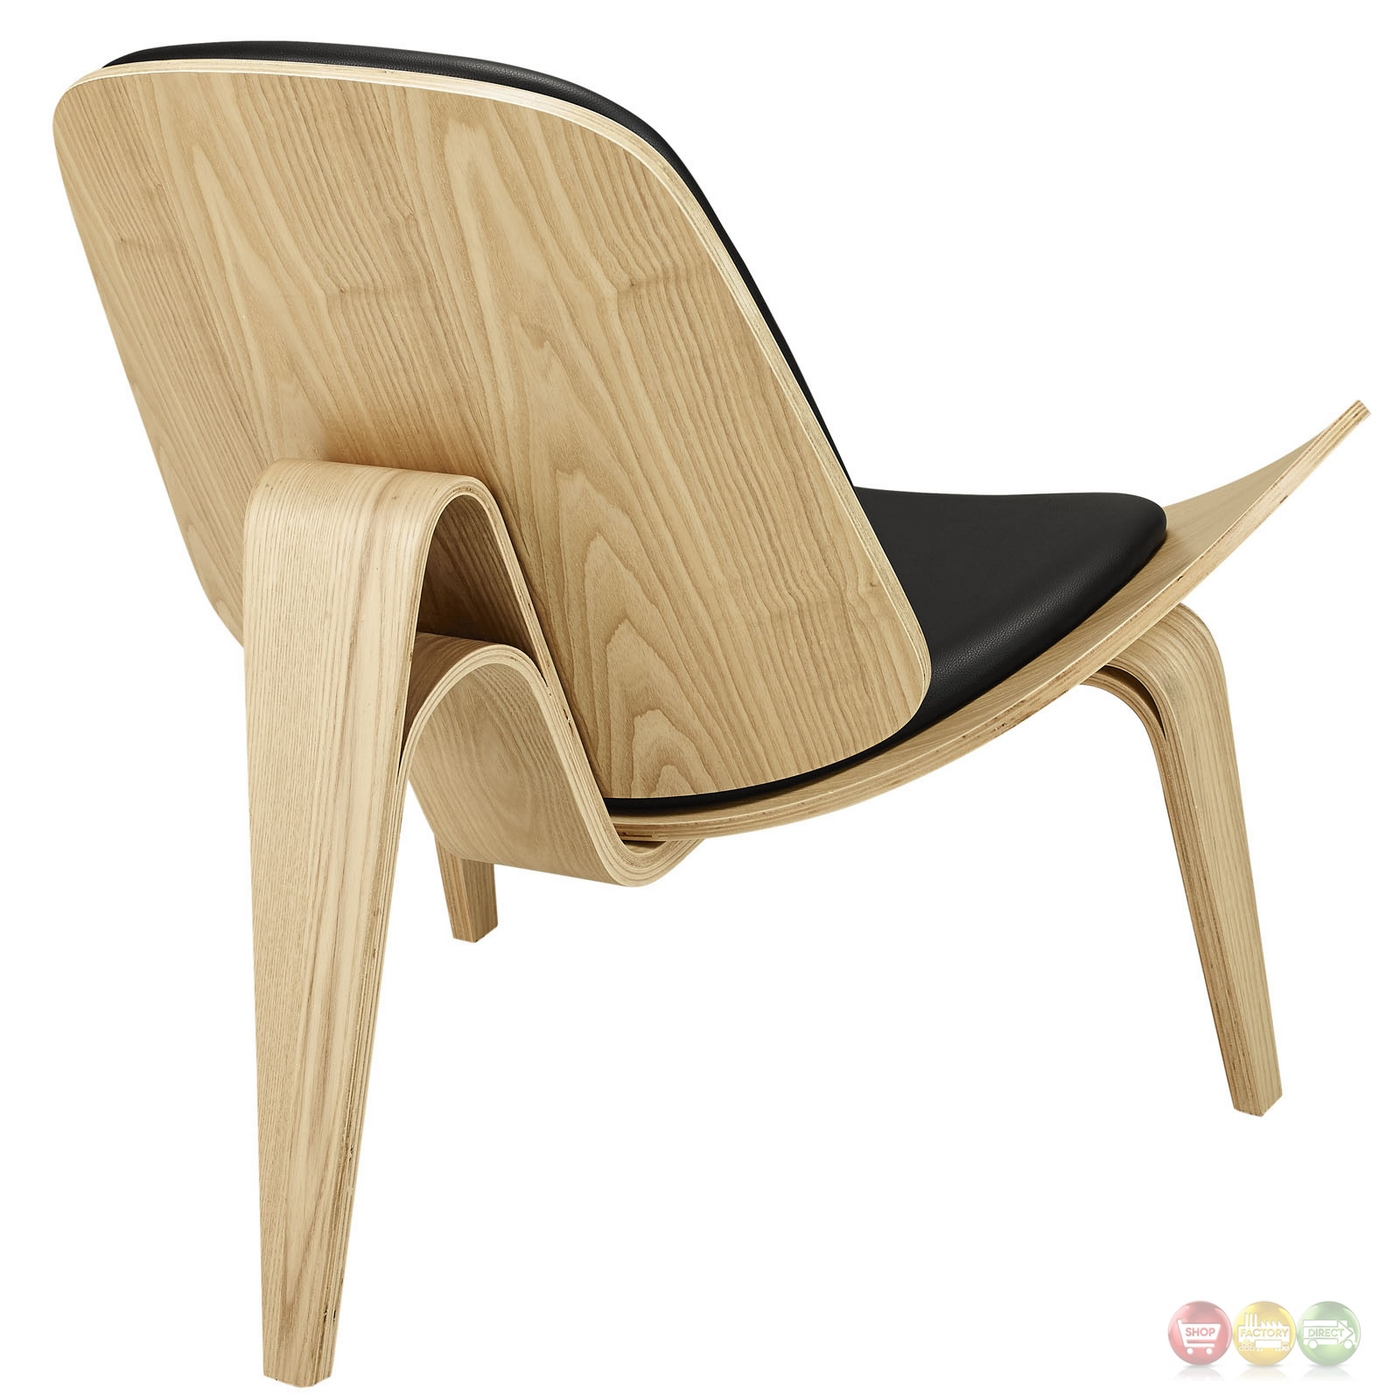 Arch Modernistic Lounge Chair Vinyl Padded Seat Oak Black. Full resolution‎  portraiture, nominally Width 1400 Height 1399 pixels, portraiture with #963537.